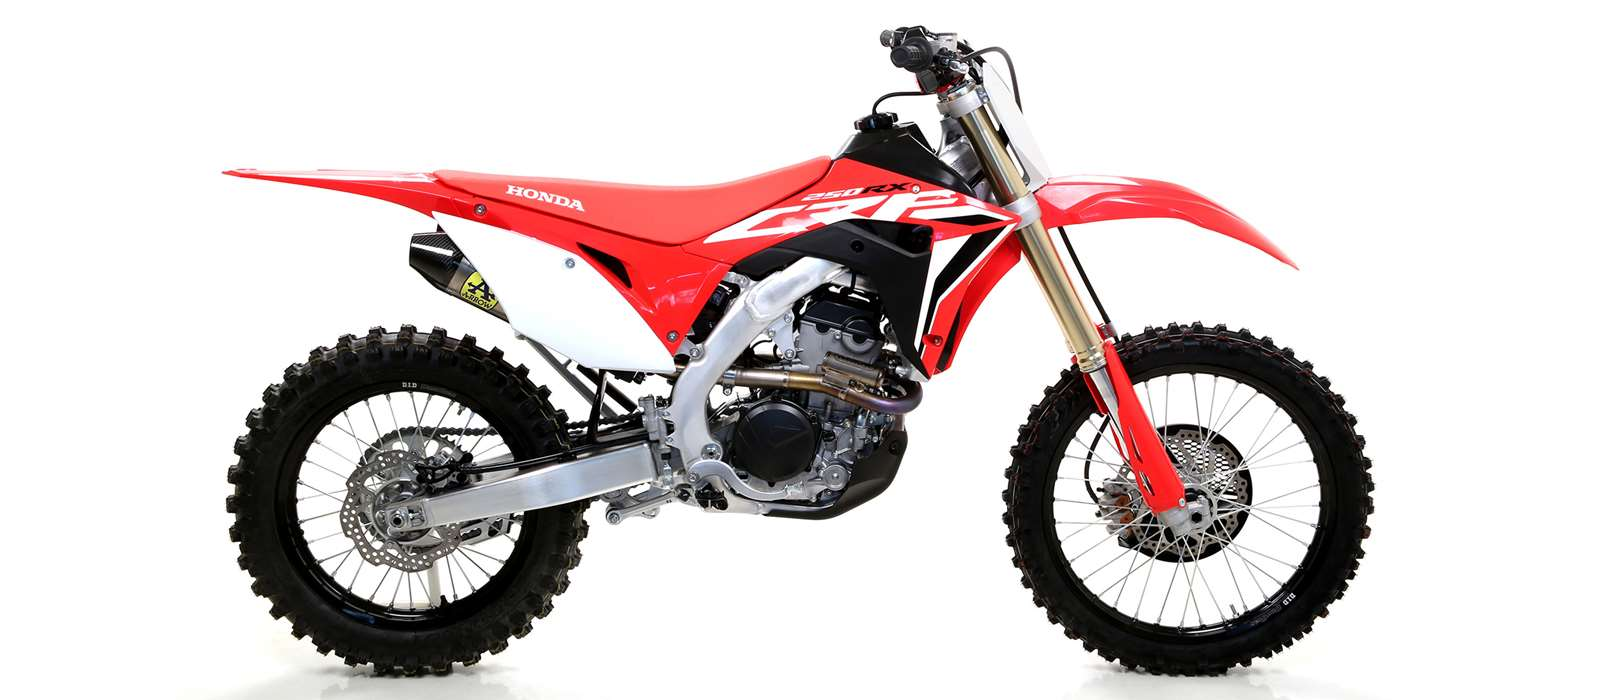 Arrow Mx competition race exhaust for honda crf